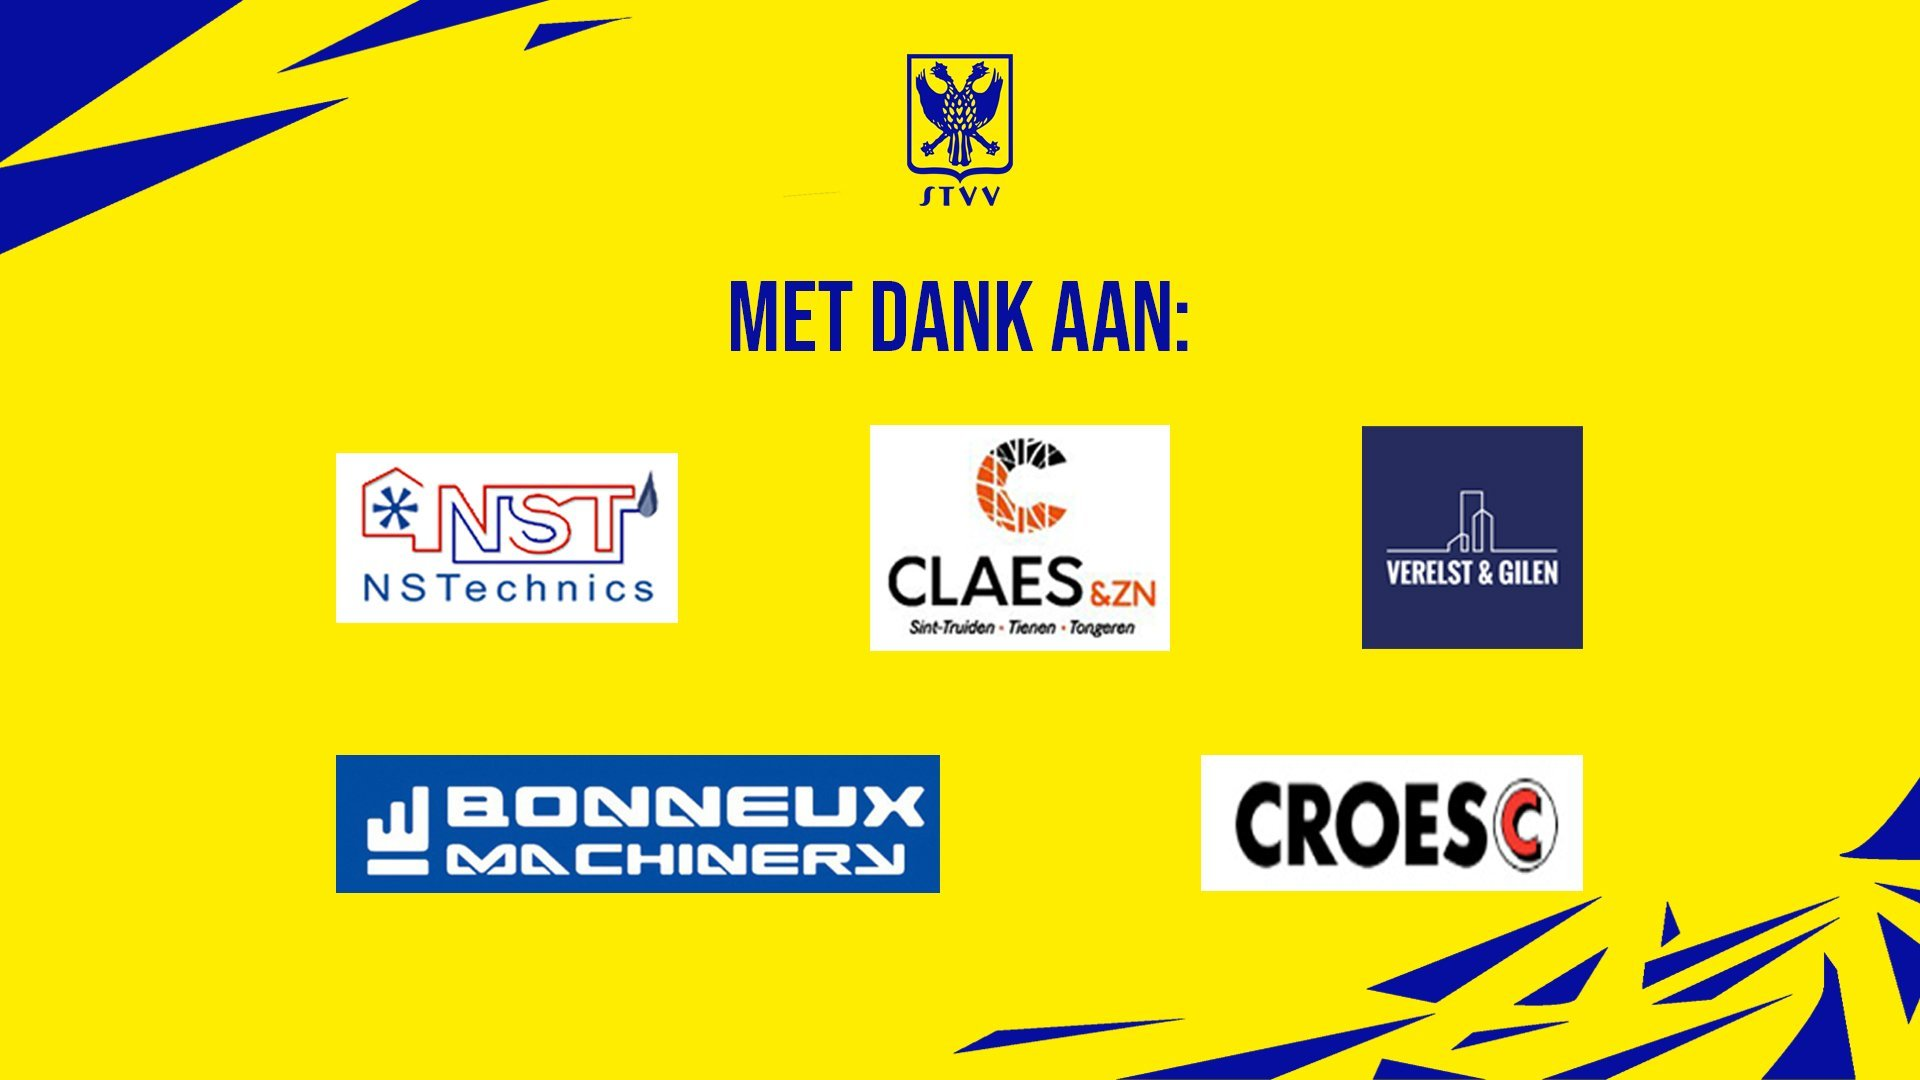 The Bus Trip to Waregem is Free Thanks to STVV Partners